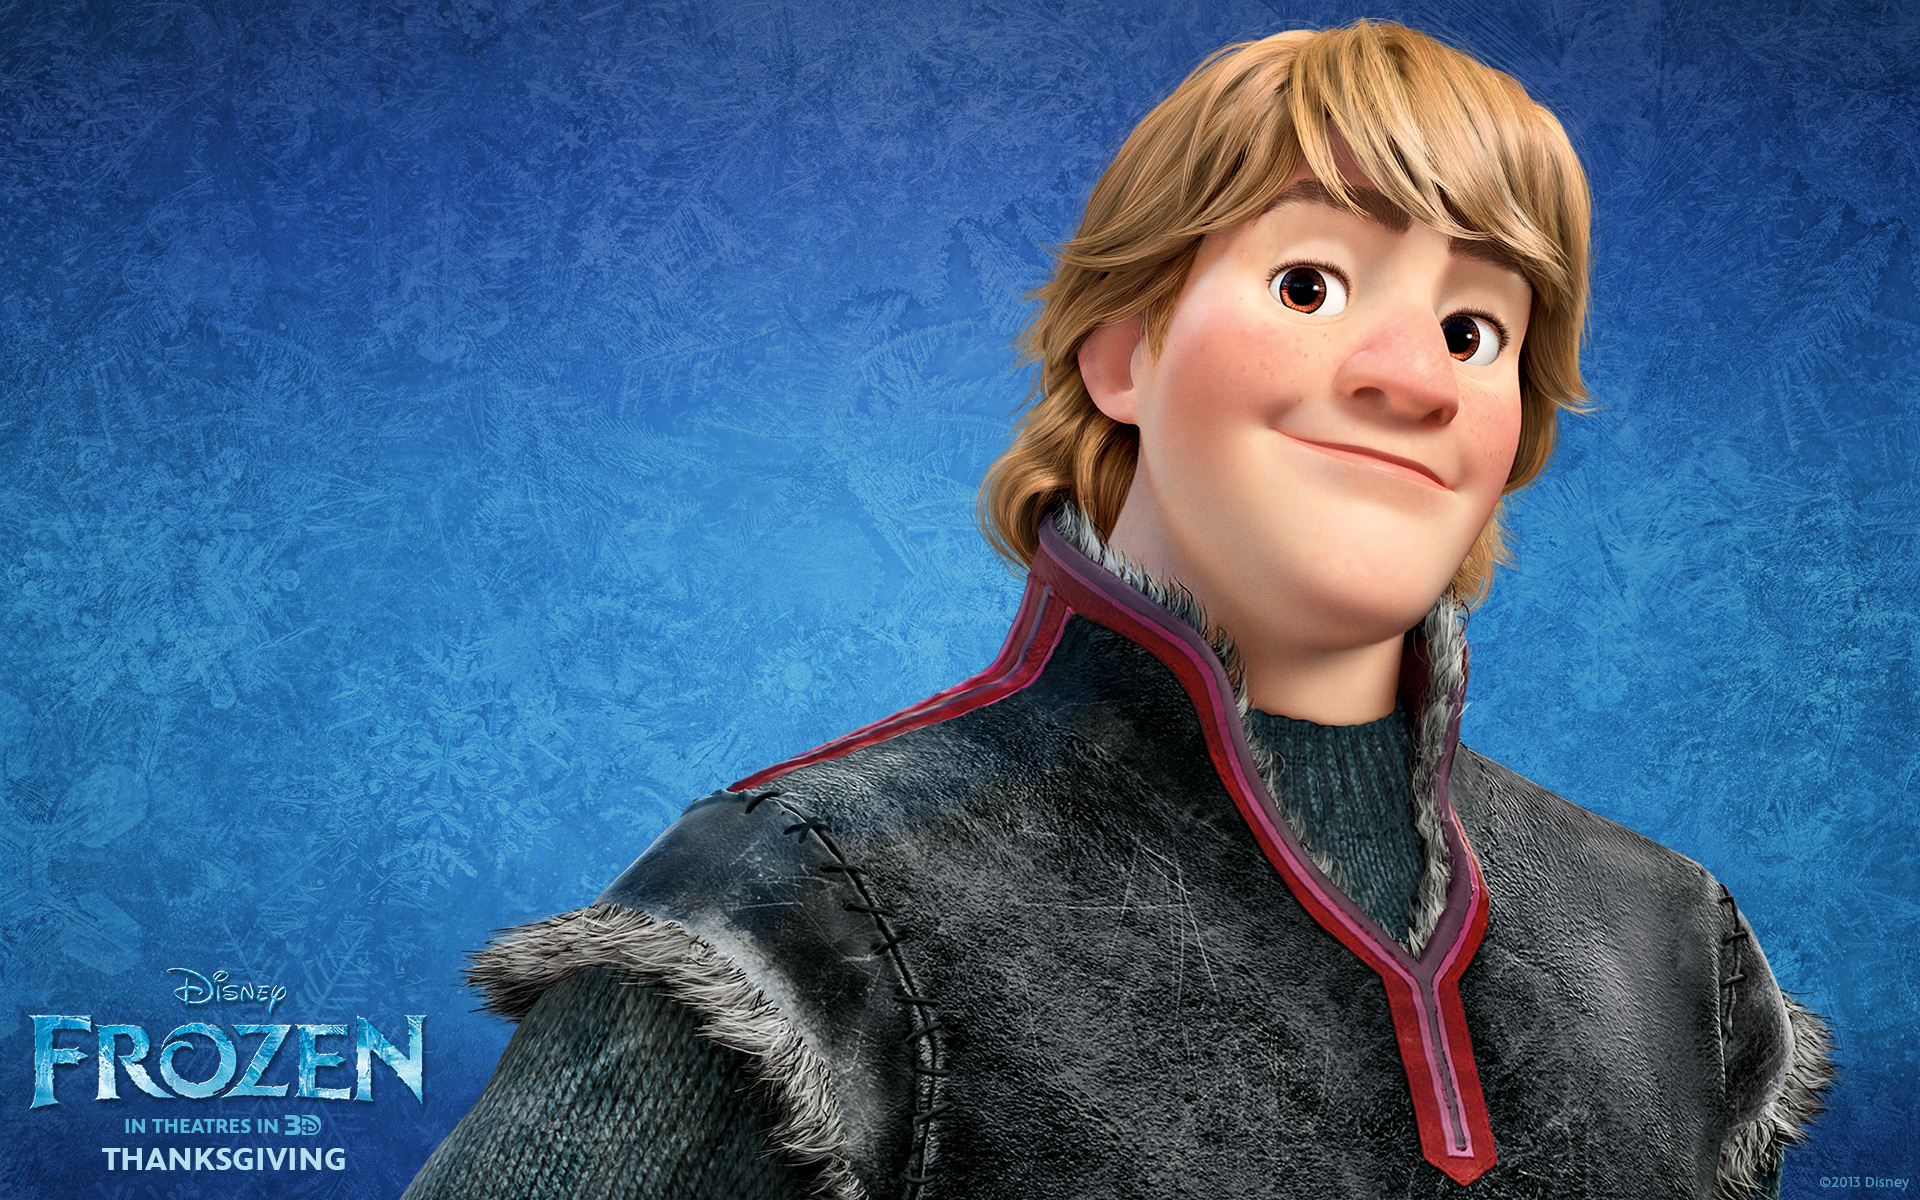 kristoff from disney's frozen desktop wallpaper